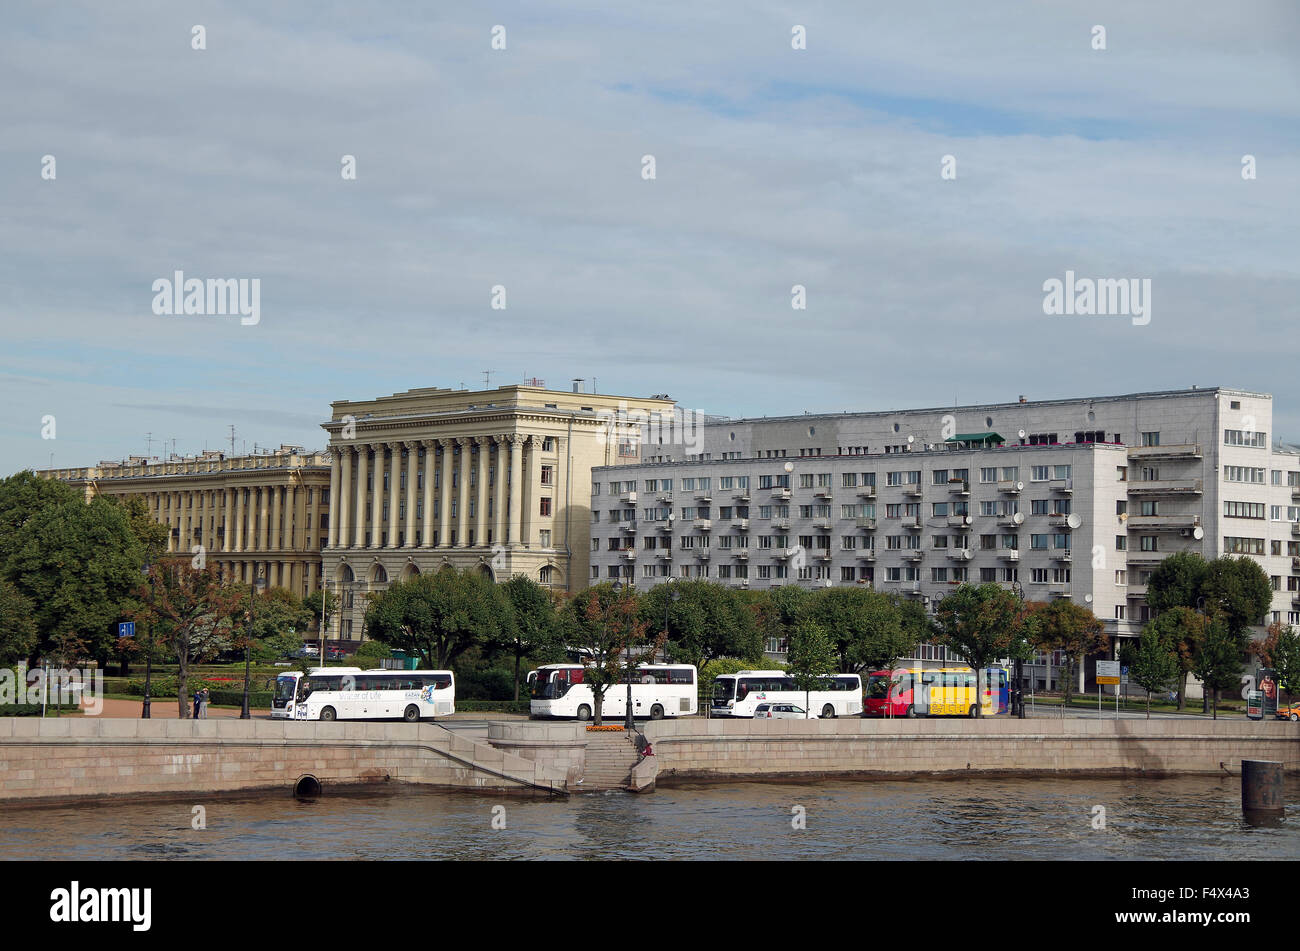 St Petersburg, Building fronting Trinity Square - Stock Image